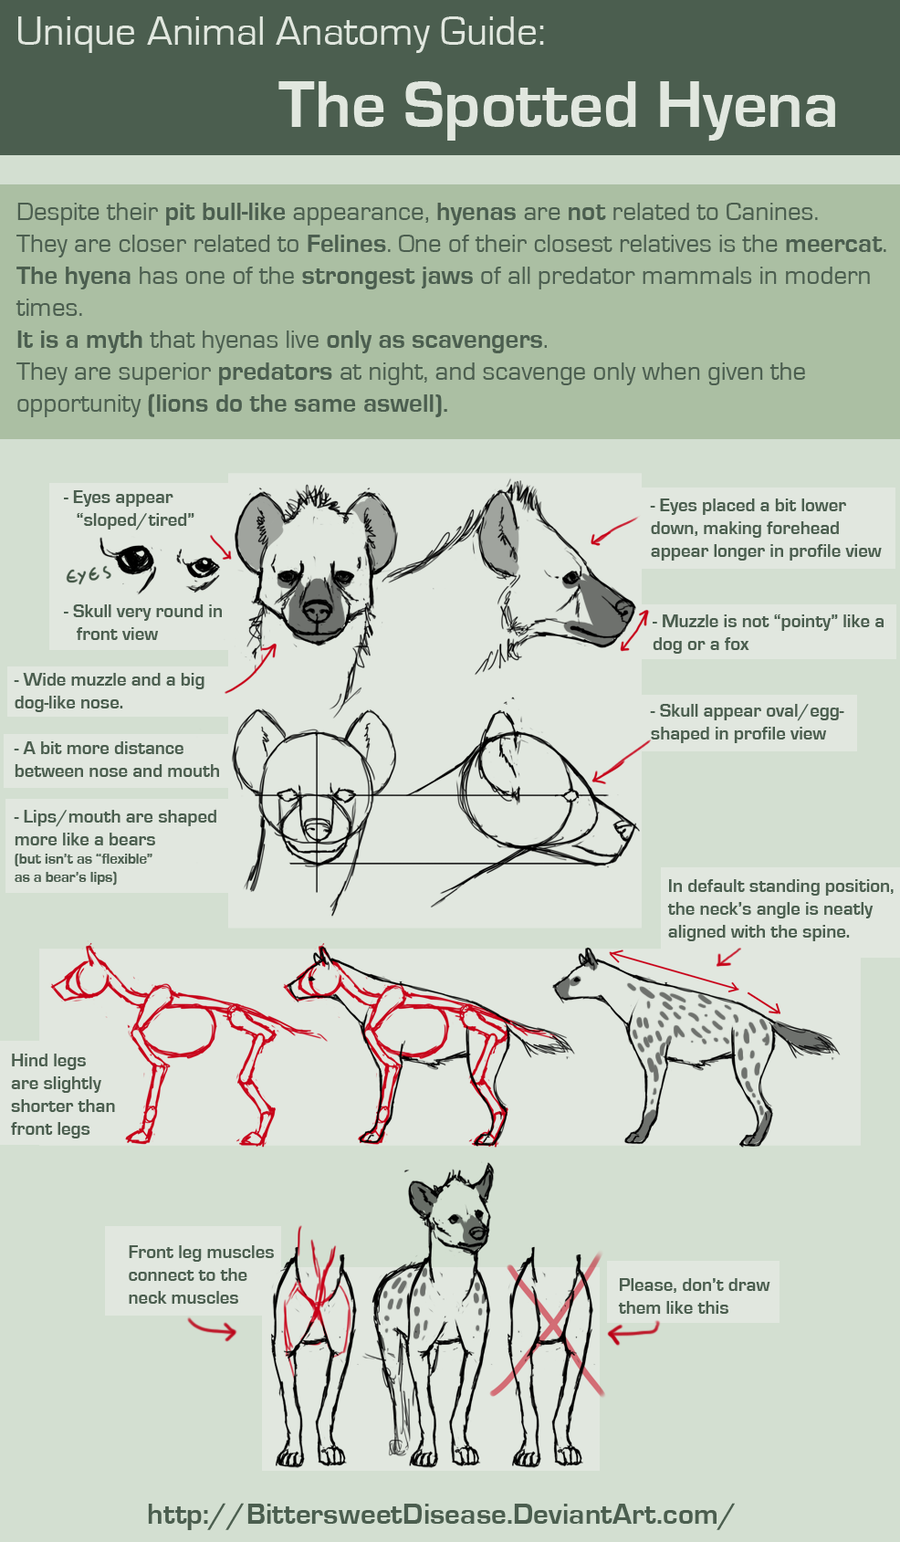 foervraengd unique animal anatomy spotted hyena by bittersweetdisease oh lol i was supposed to just make a boss design ended up with a guide